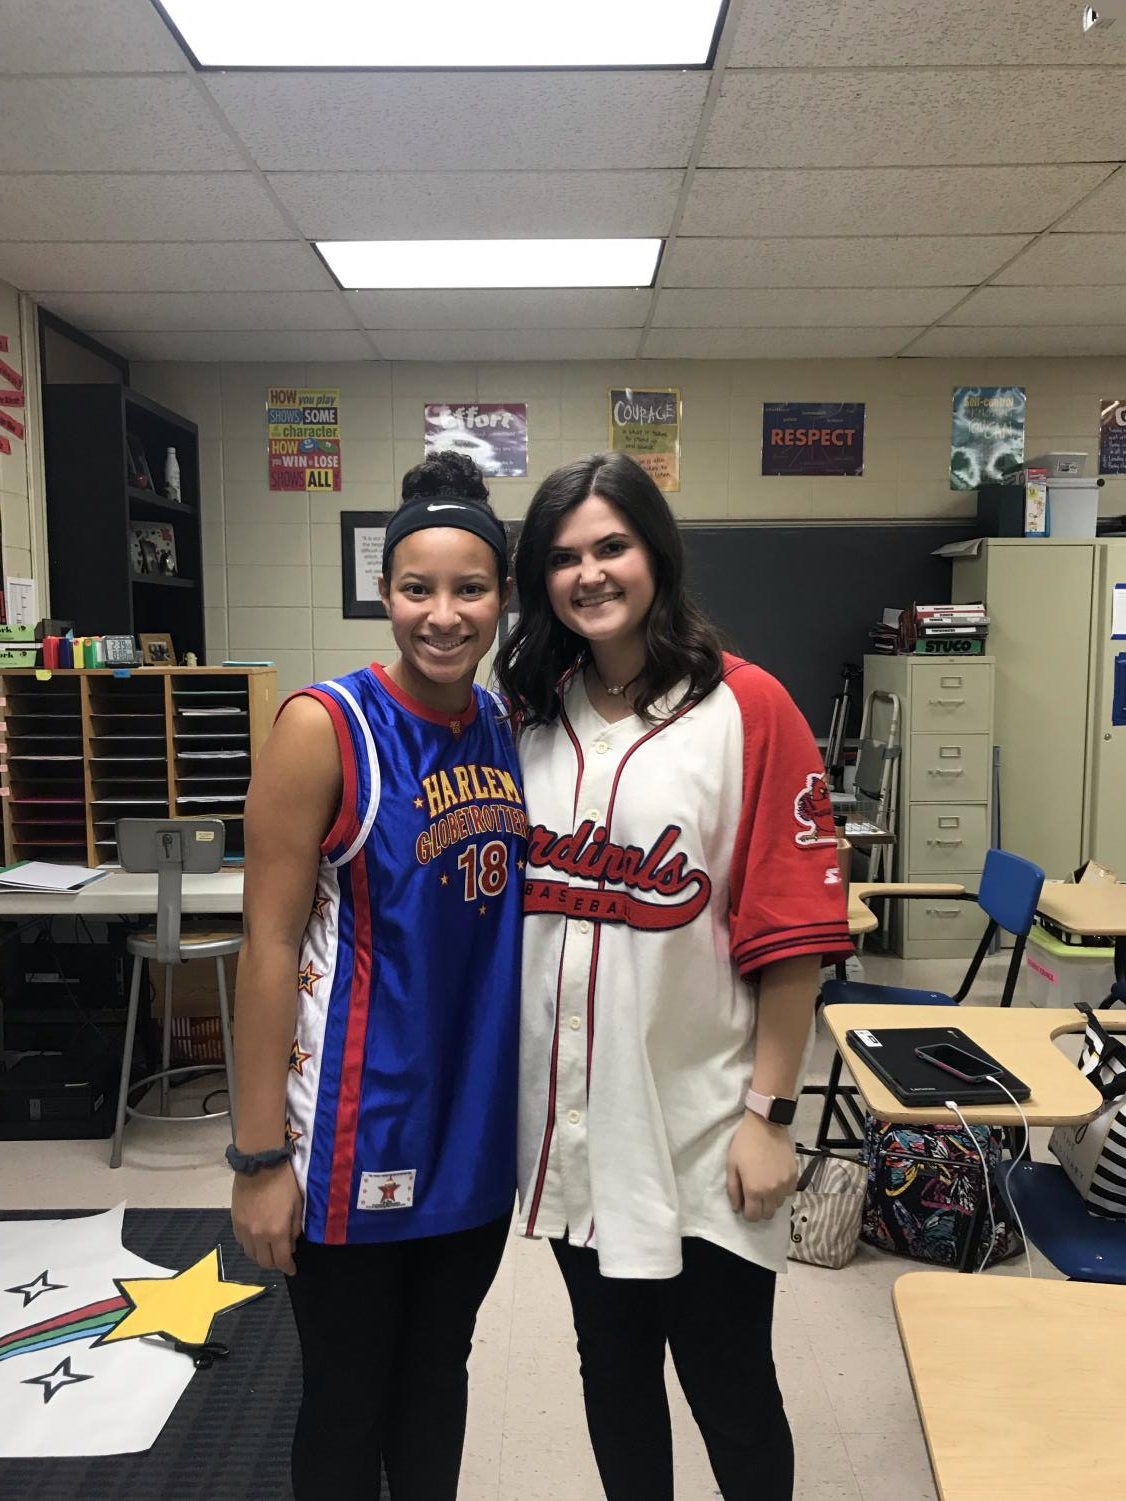 Seniors Bailey Riggs and Tori Lefler wearing a cardinals and a Harlem Globetrottes jerseys.